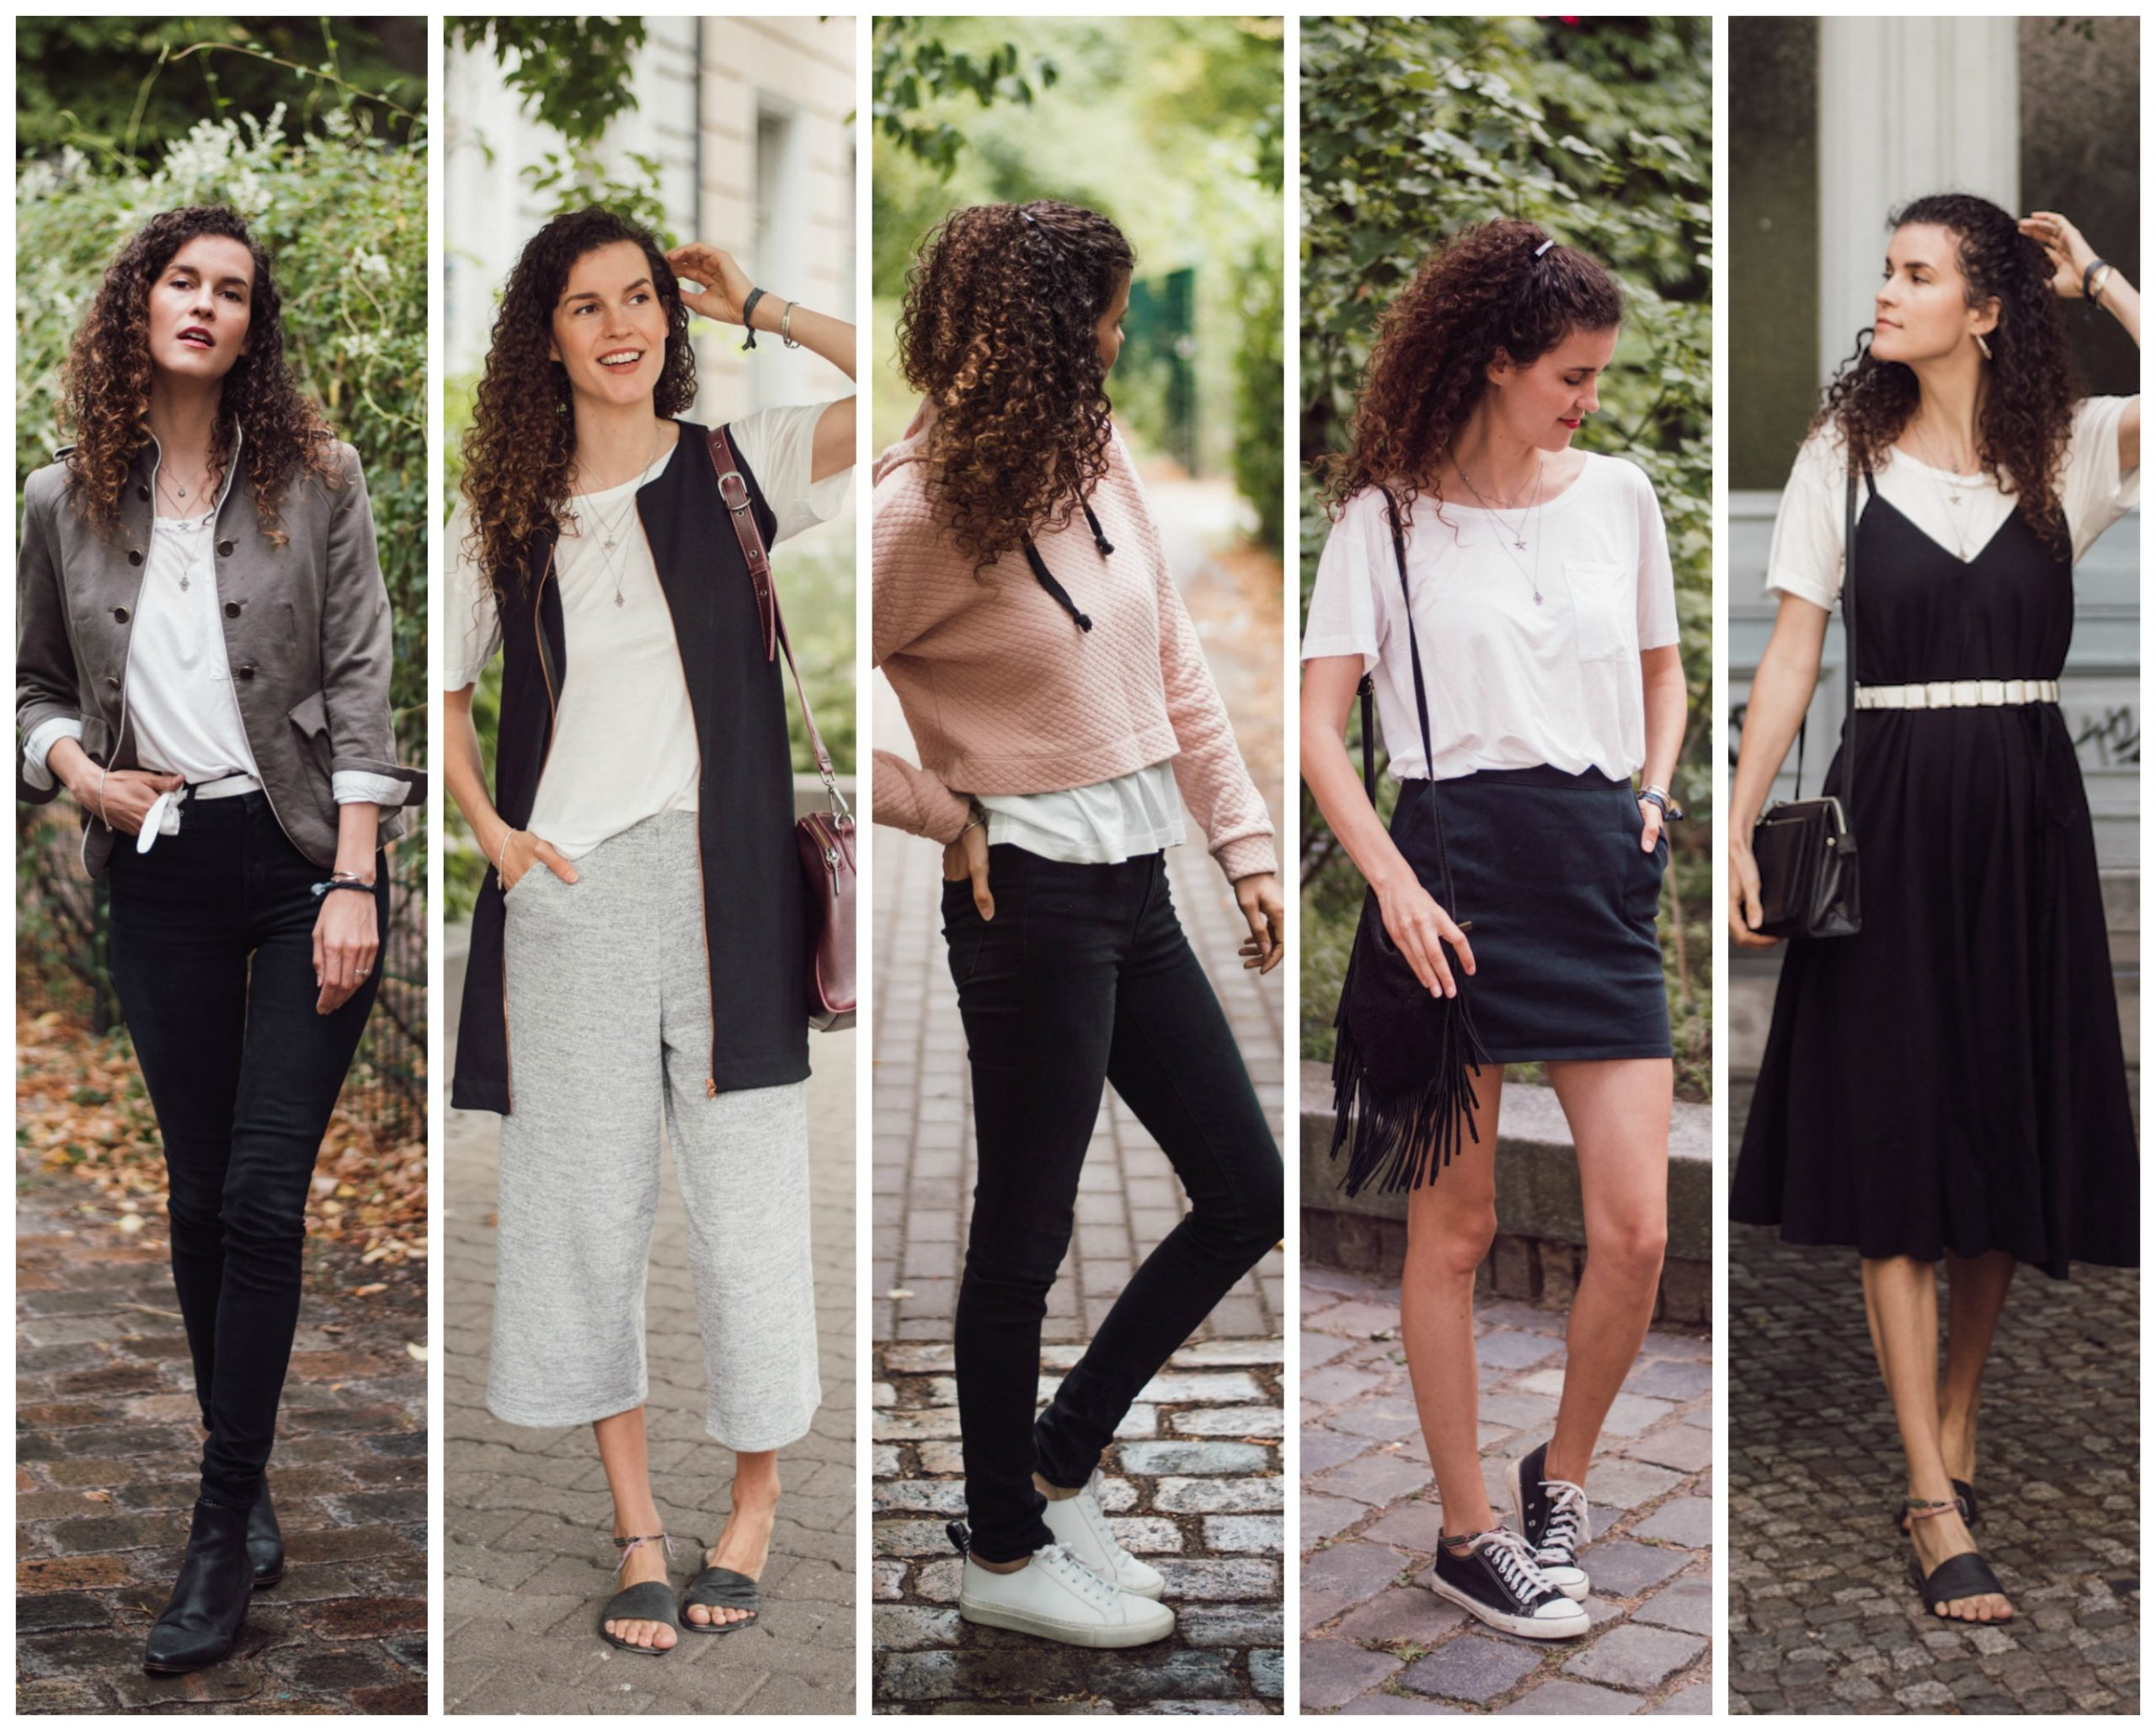 14 Seriously Impressive Outfits to Inspire Your Spring Style